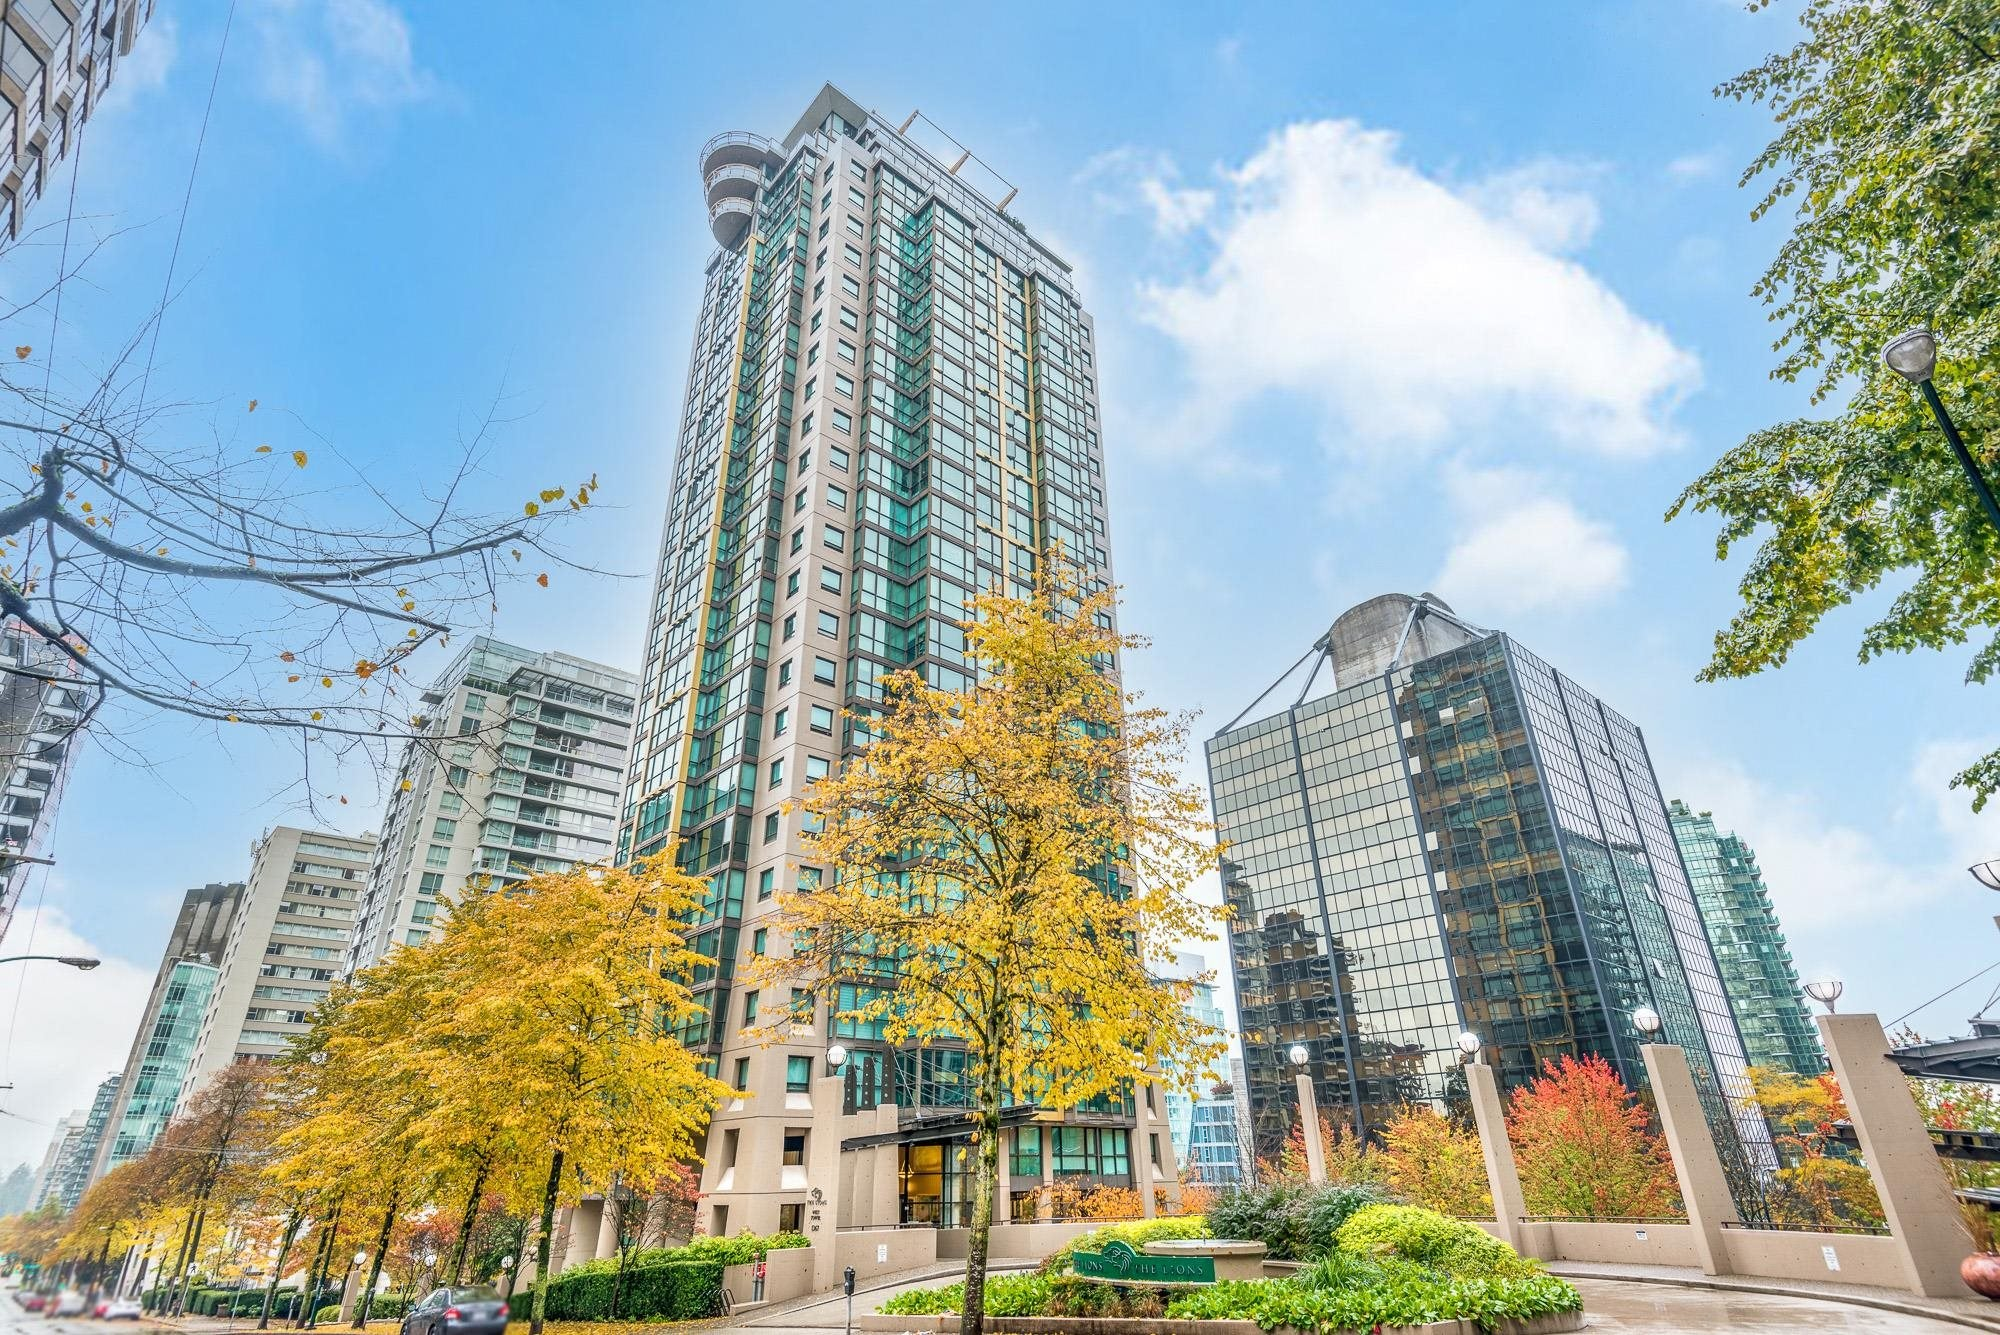 606 1367 ALBERNI STREET - West End VW Apartment/Condo for sale, 2 Bedrooms (R2626633) - #1